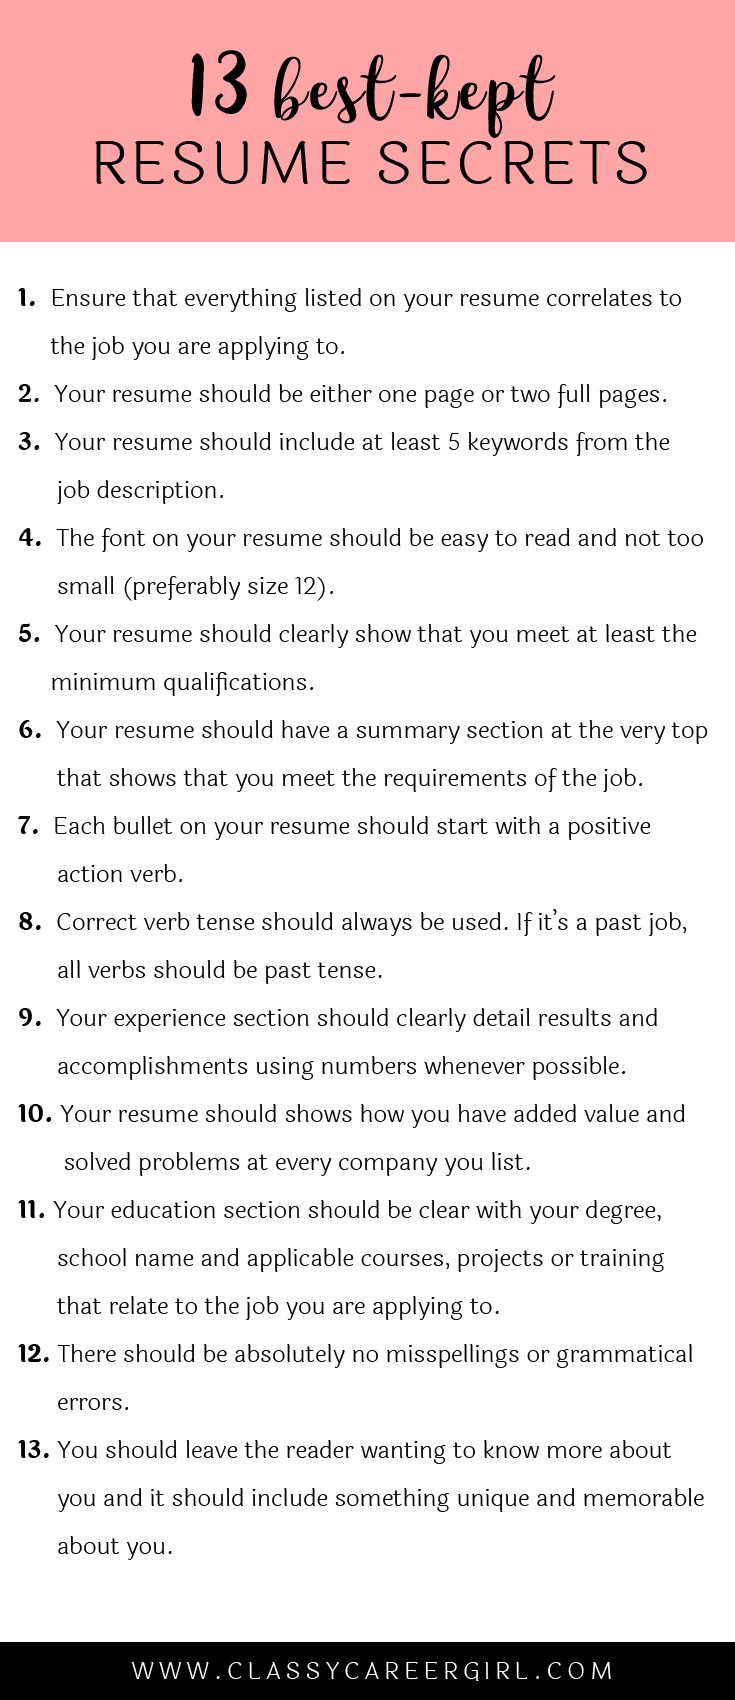 Picnictoimpeachus  Remarkable  Ideas About Resume On Pinterest  Cv Format Resume Cv And  With Great Some Hiring Managers Will Toss Your Resume Out If You Dont Know These  With Breathtaking Basic Resume Template Word Also Beautiful Resume Templates In Addition Resume Document And Security Analyst Resume As Well As Resume Formating Additionally Hr Business Partner Resume From Pinterestcom With Picnictoimpeachus  Great  Ideas About Resume On Pinterest  Cv Format Resume Cv And  With Breathtaking Some Hiring Managers Will Toss Your Resume Out If You Dont Know These  And Remarkable Basic Resume Template Word Also Beautiful Resume Templates In Addition Resume Document From Pinterestcom